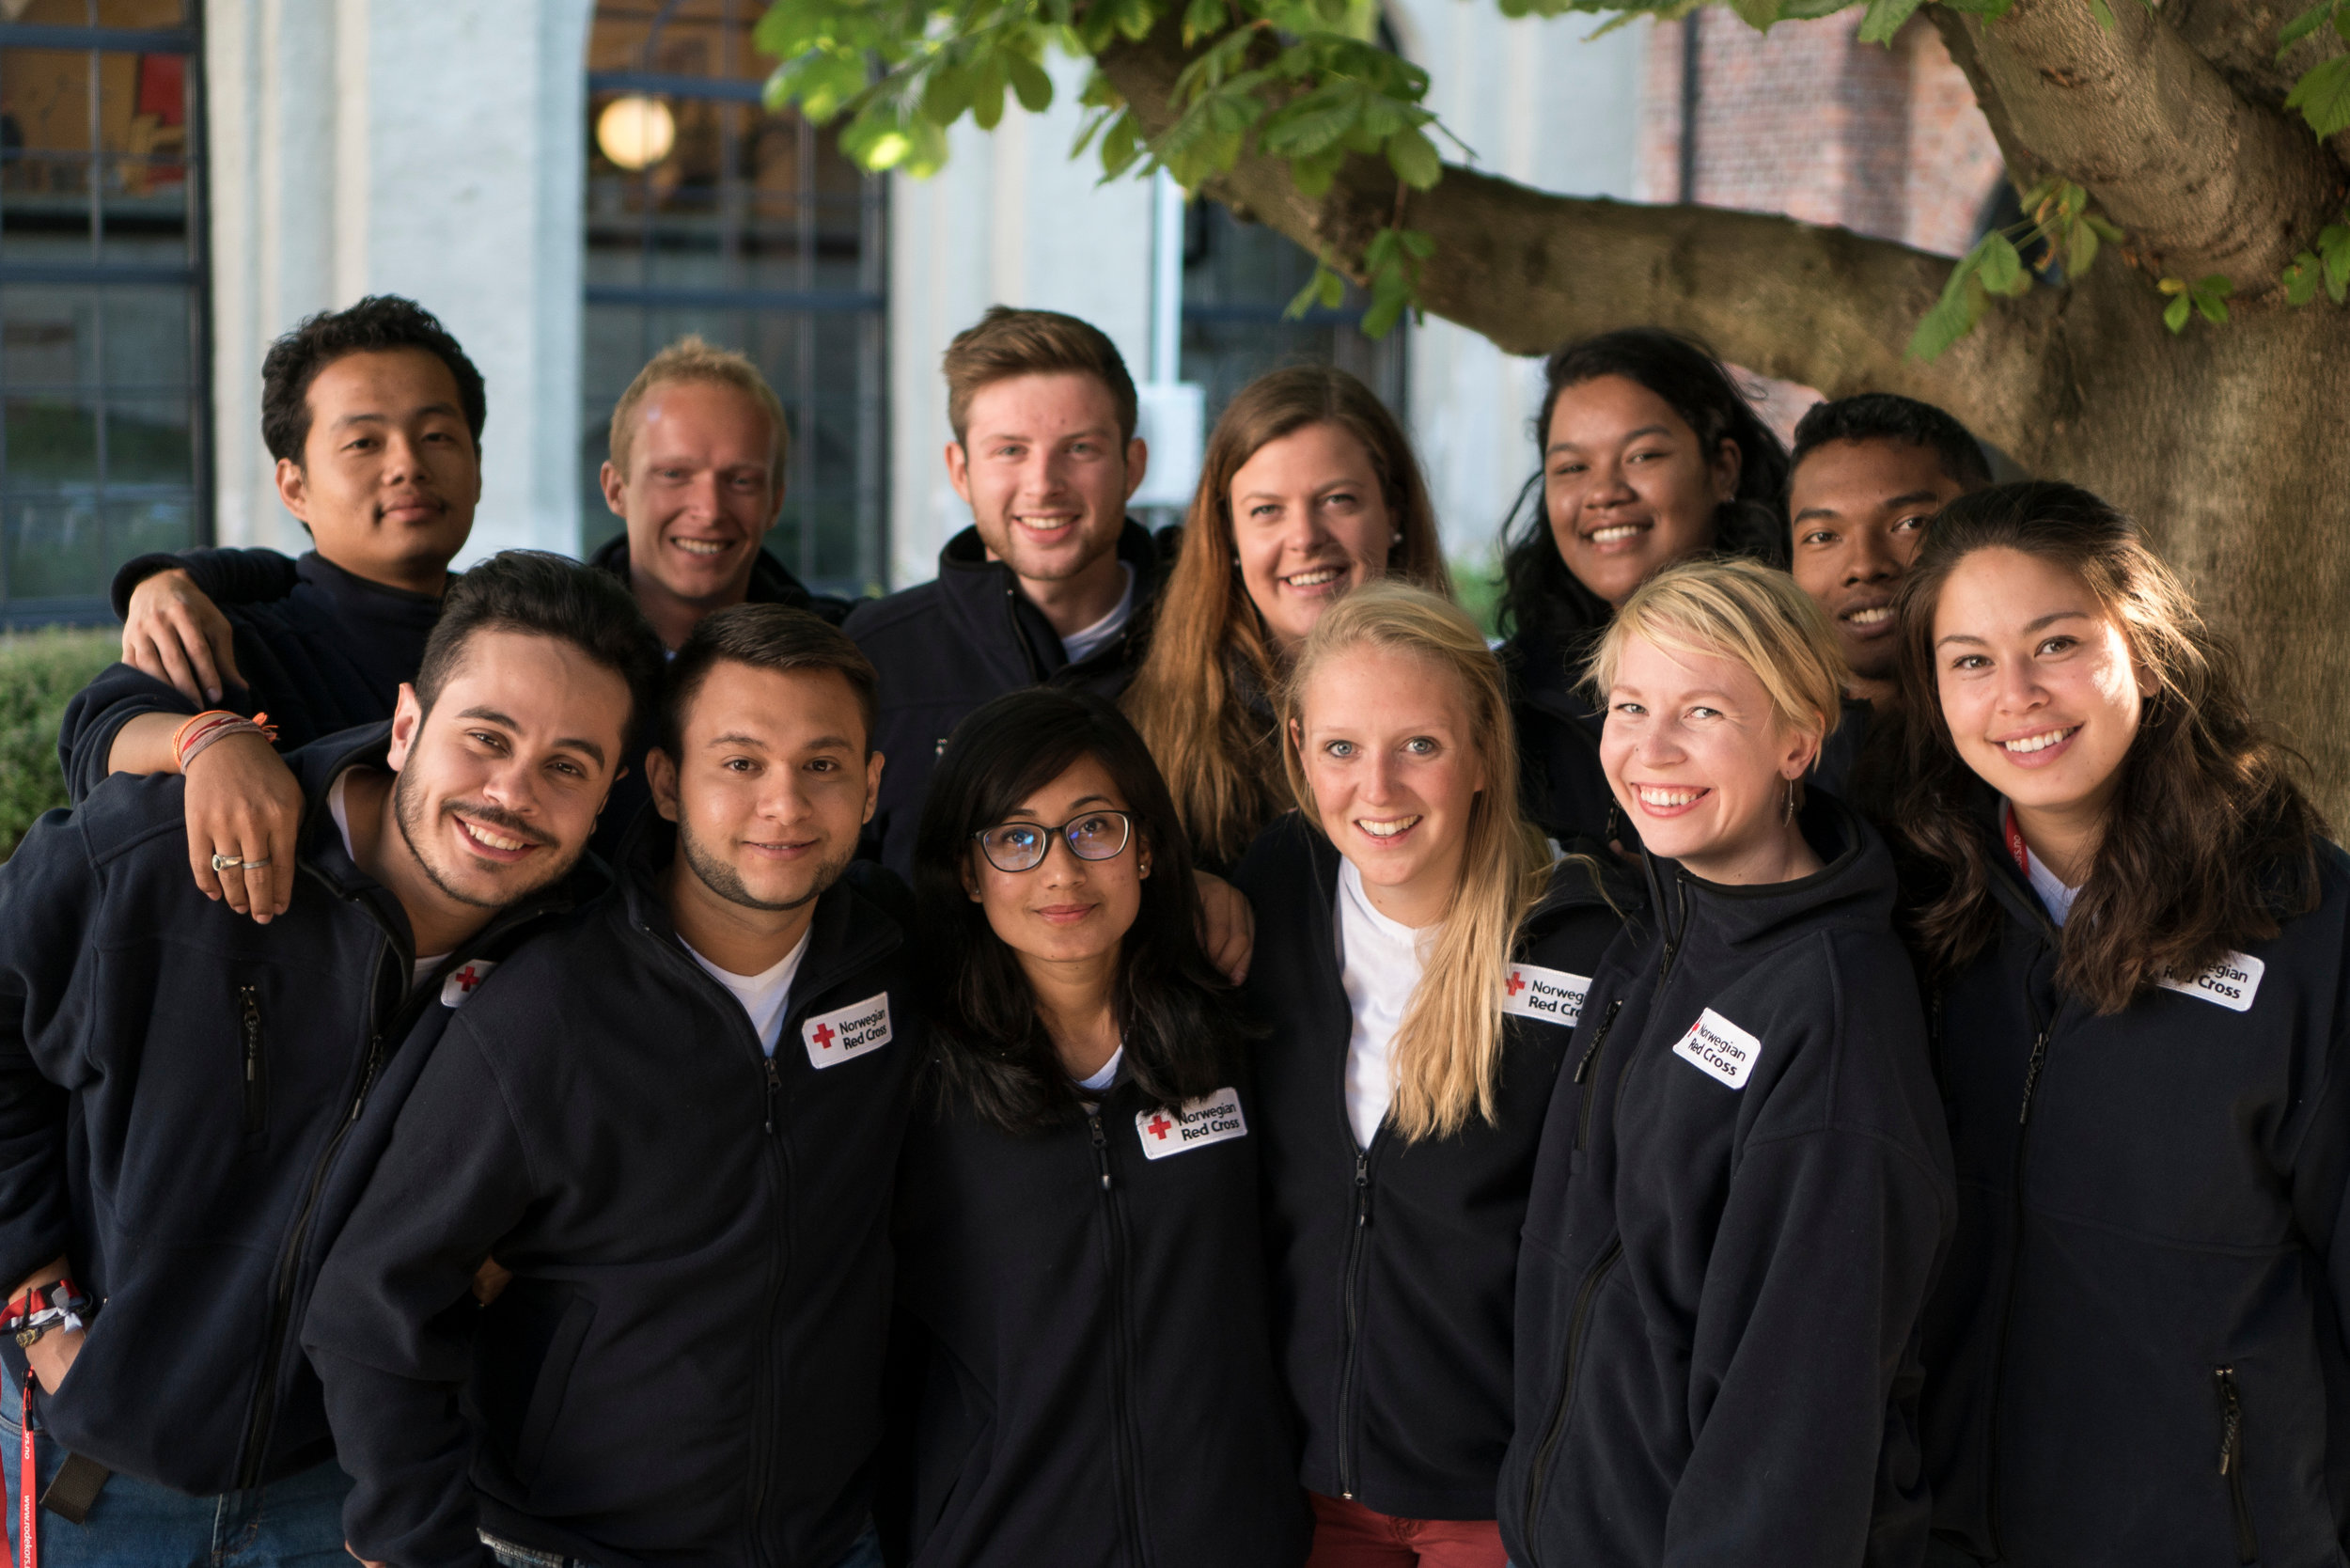 The Youth Delegates 2016-2017. Photo: Olav A. Saltbones, Red Cross